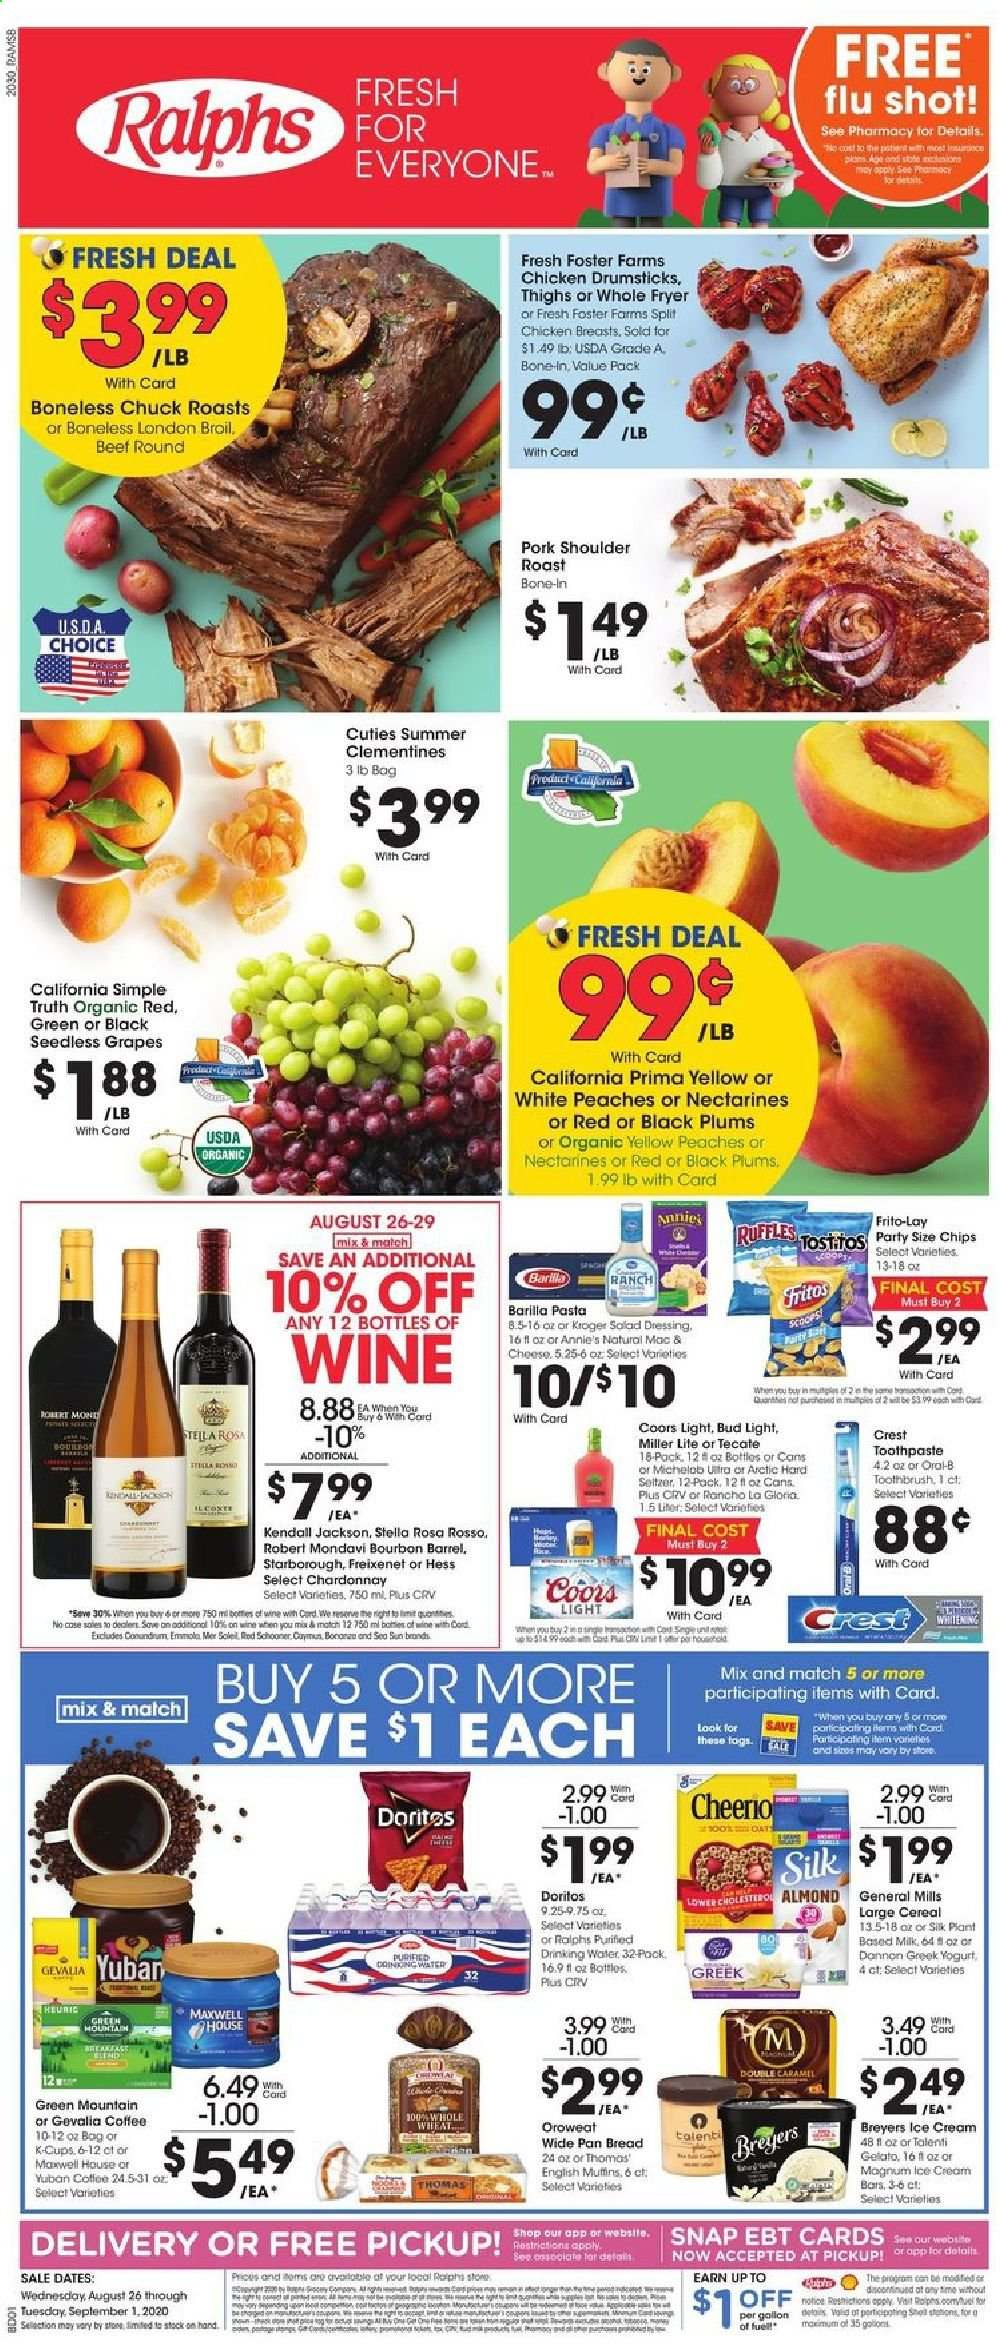 Ralphs Flyer - 08.26.2020 - 09.01.2020 - Sales products - beef meat, bourbon, bread, caramel, cereals, clementines, coffee, crest, dates, doritos, fryer, fuel, gelato, grapes, macaroni & cheese, magnum, milk, miller lite, nectarines, salad dressing, seedless grapes, seltzer, toothbrush, ice cream, ice cream bars, plums, pork meat, pork shoulder, chardonnay, chicken, chicken breast, chicken drumsticks, pan, peaches, organic, oral-b, chips, drinking water, cheese, dressing, toothpaste, cereal, pasta, rod, bud light, wine, salad, cot, miller, coors, michelob, roast, chicken breasts, peache. Page 1.